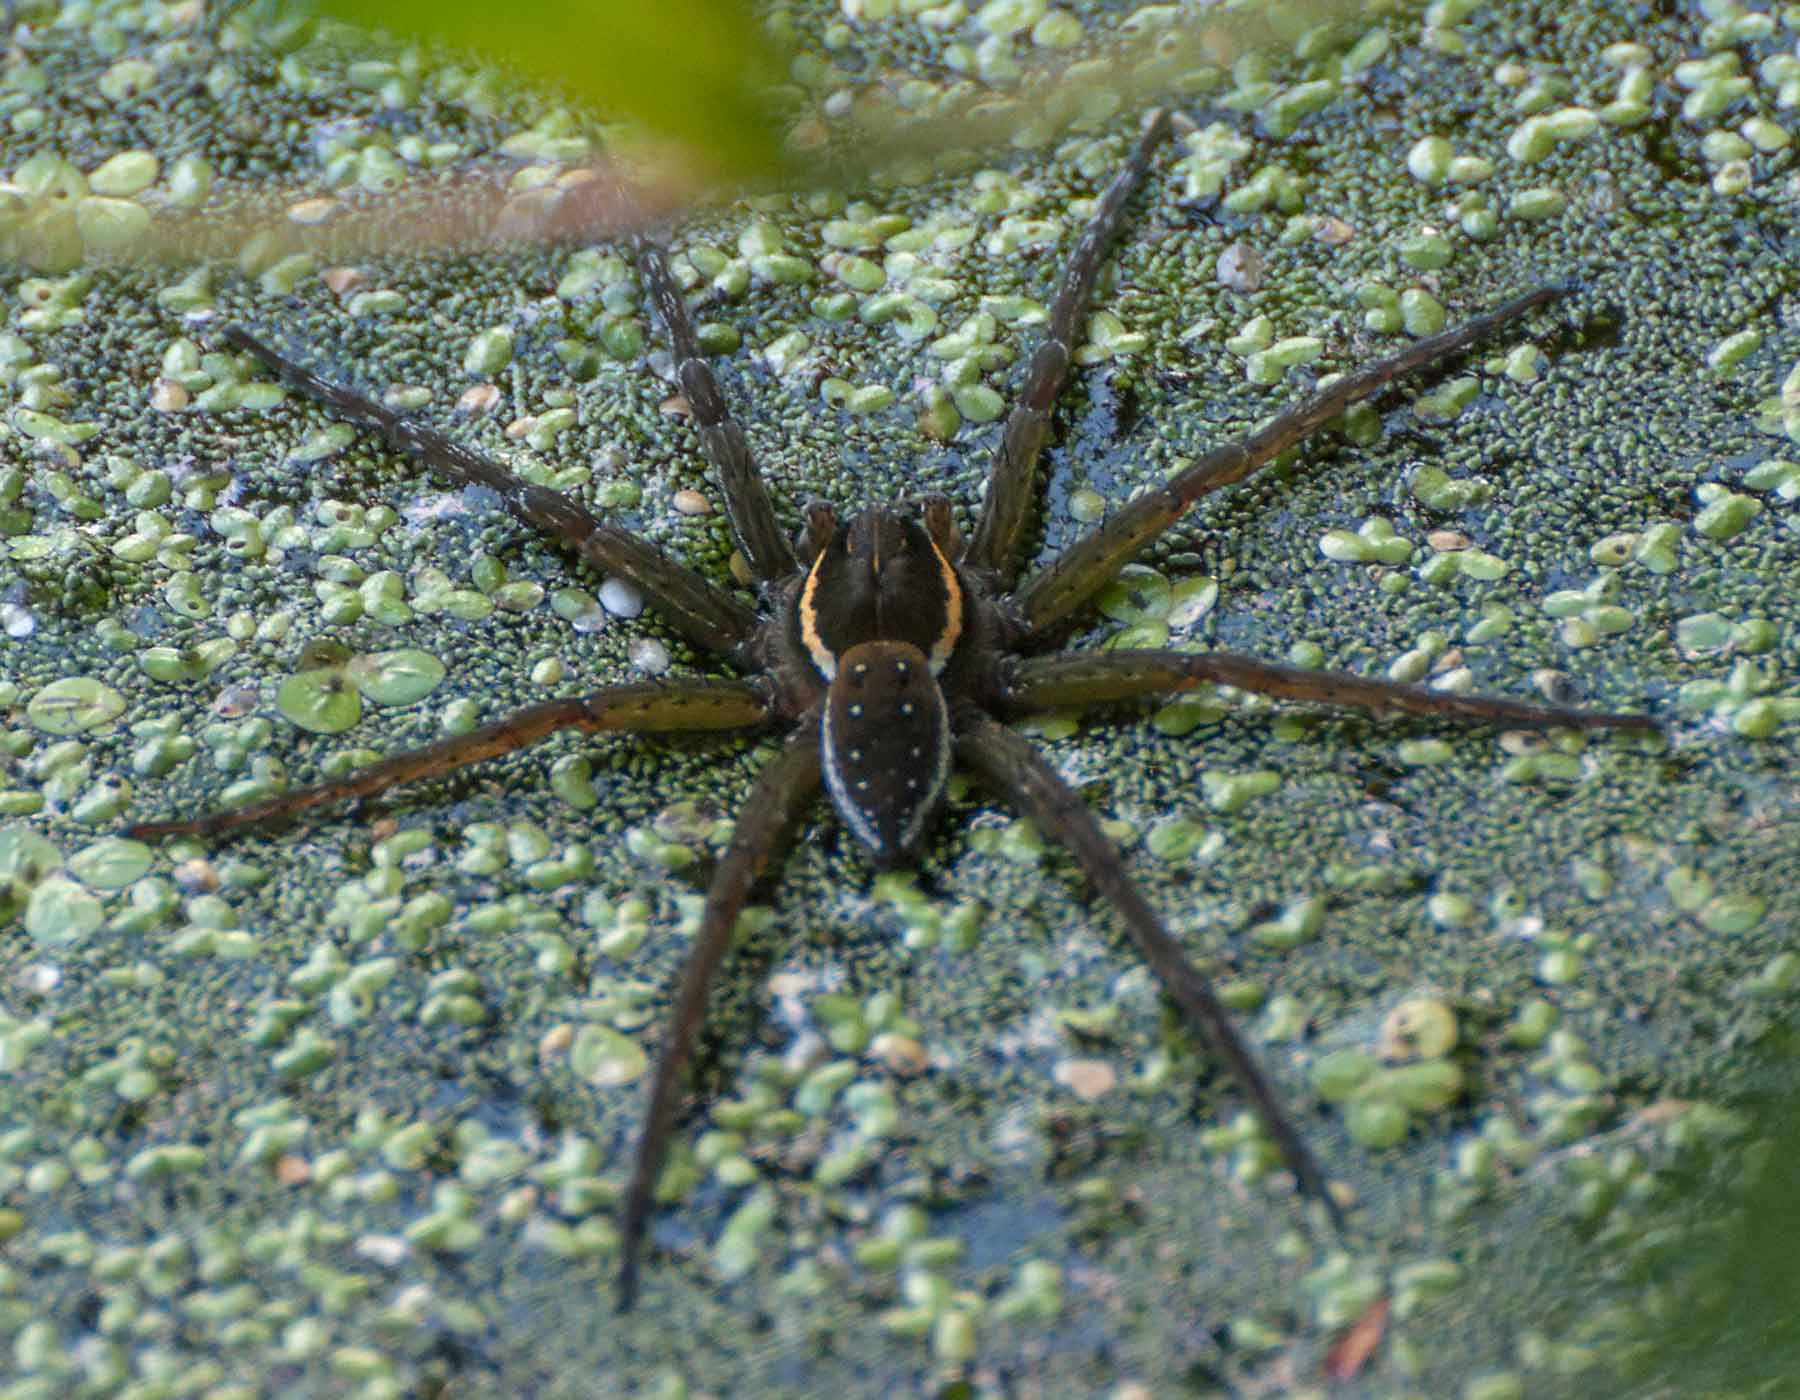 Aquatic Spiders Fishing Spiders Water Spiders Mdc